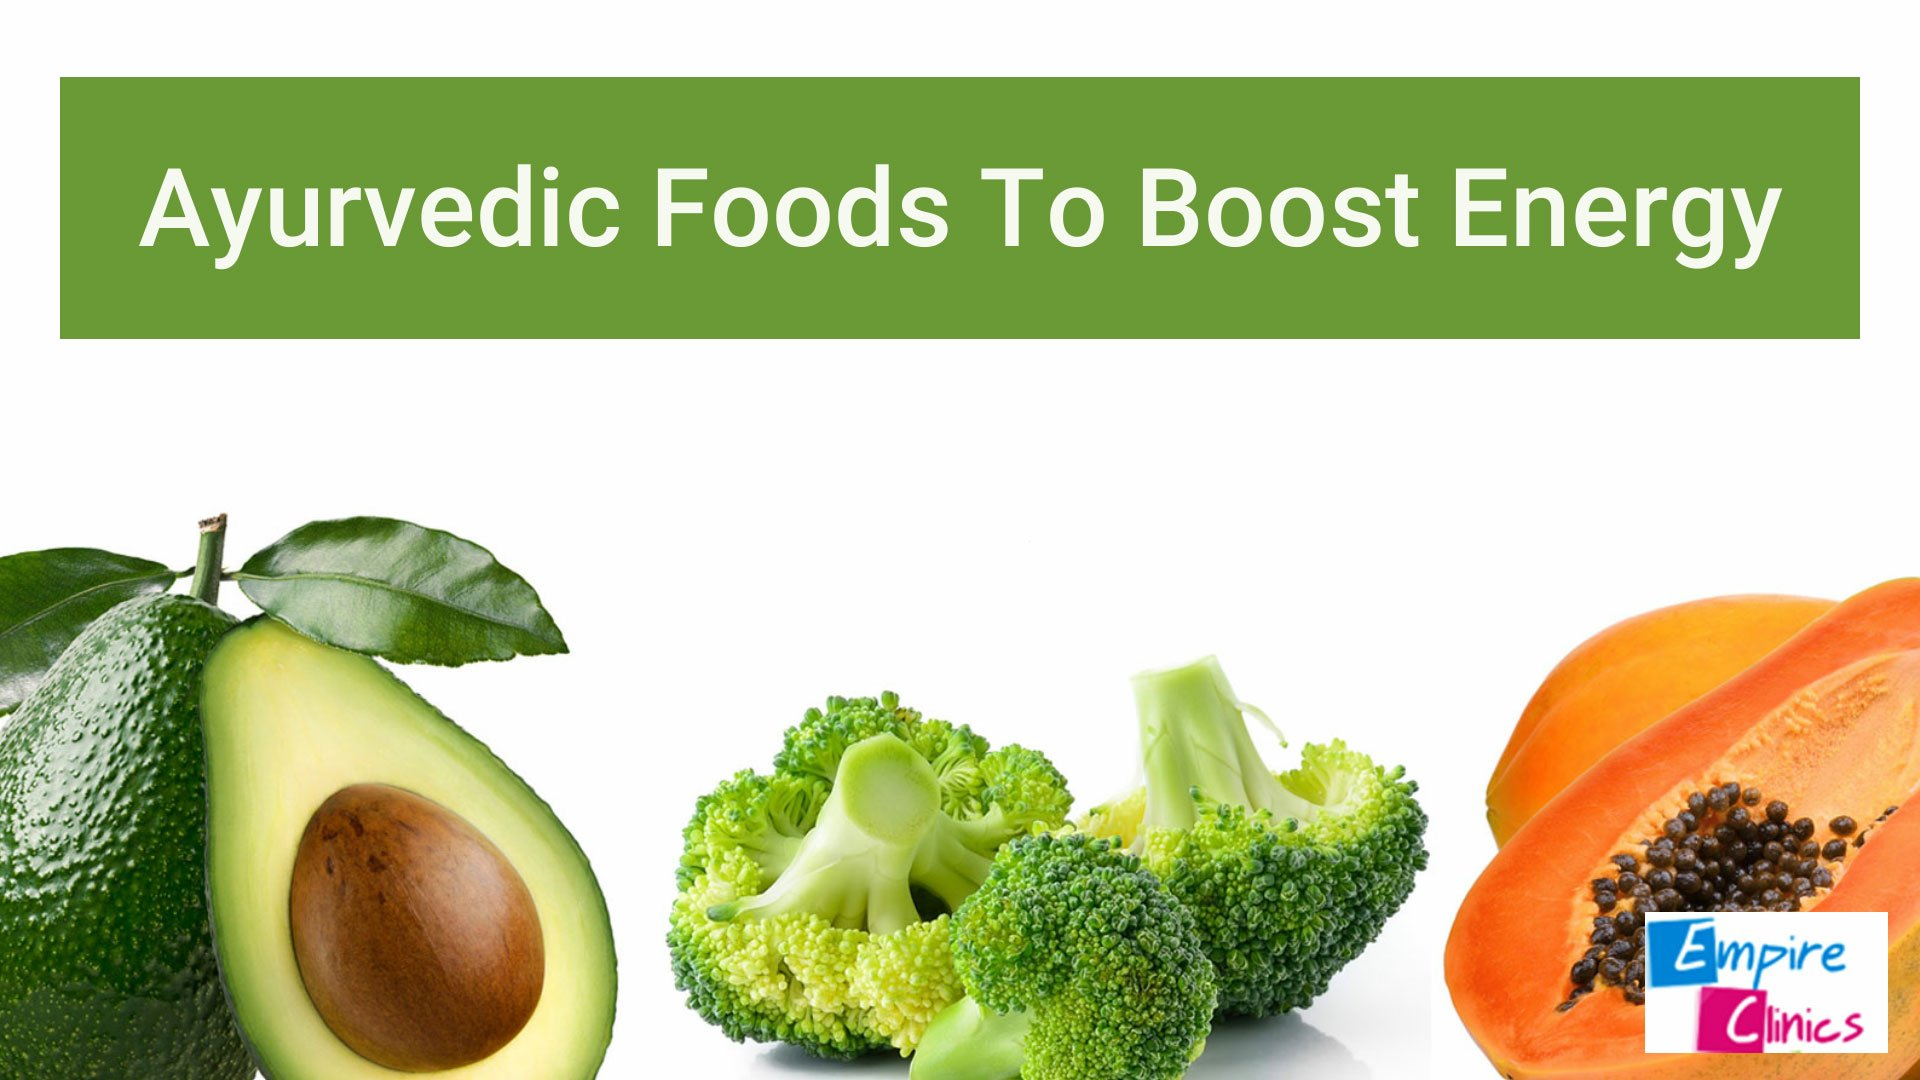 Ayurvedic Foods To Boost Energy